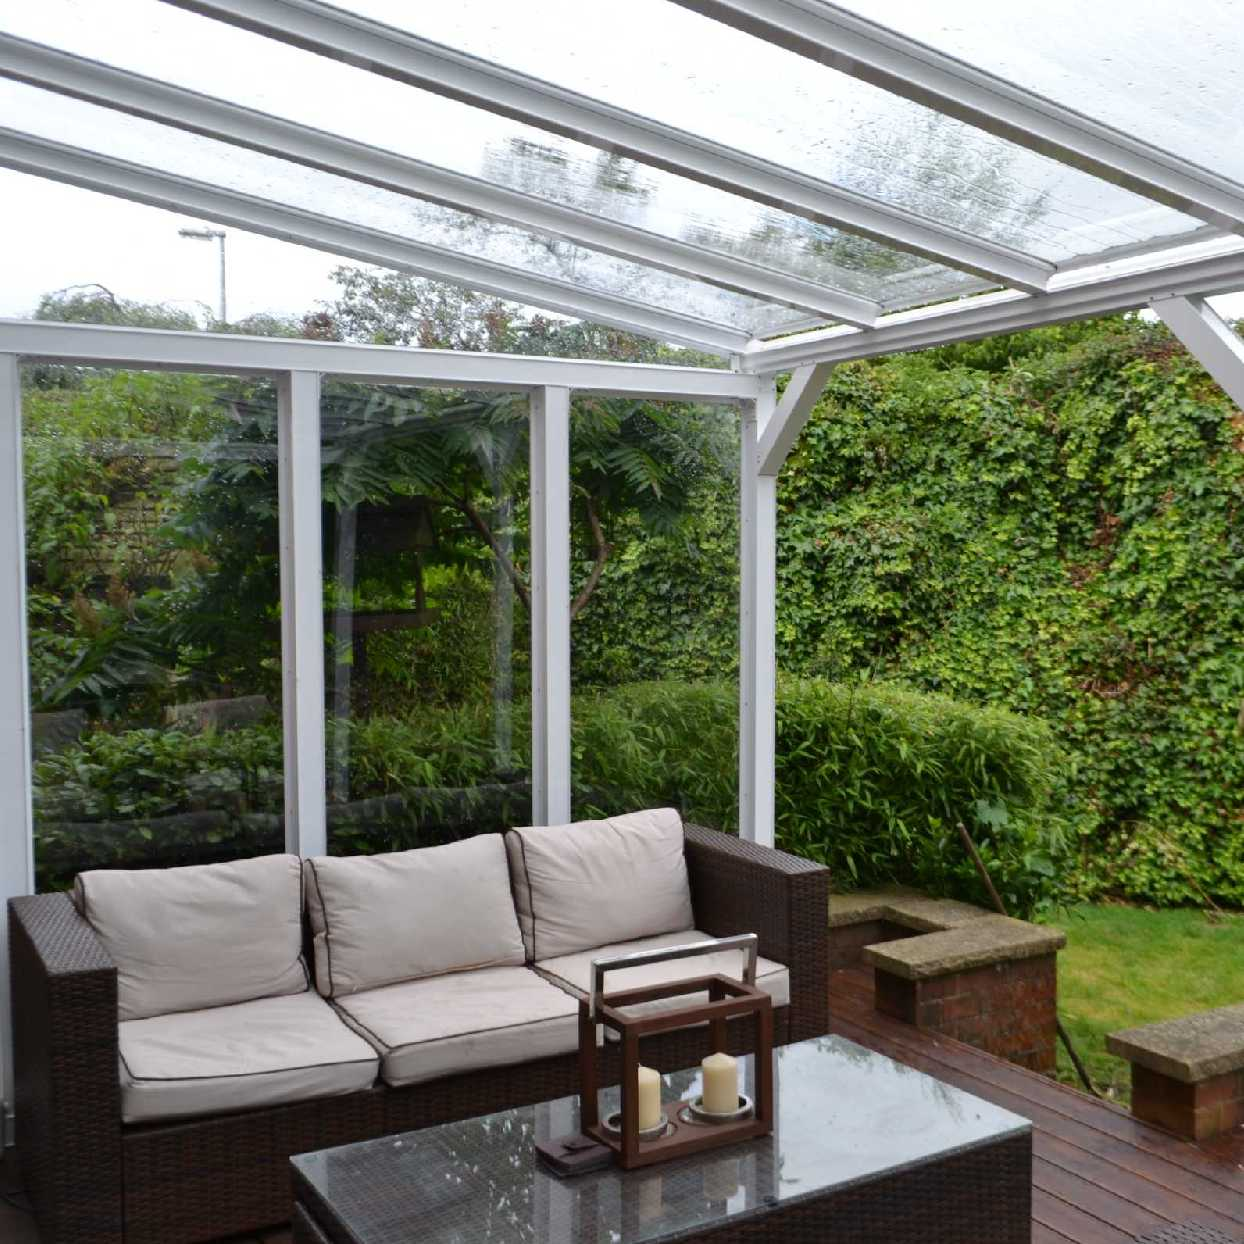 Omega Smart White Lean-To Canopy UNGLAZED for 6mm Glazing - 9.8m (W) x 2.0m (P), (5) Supporting Posts